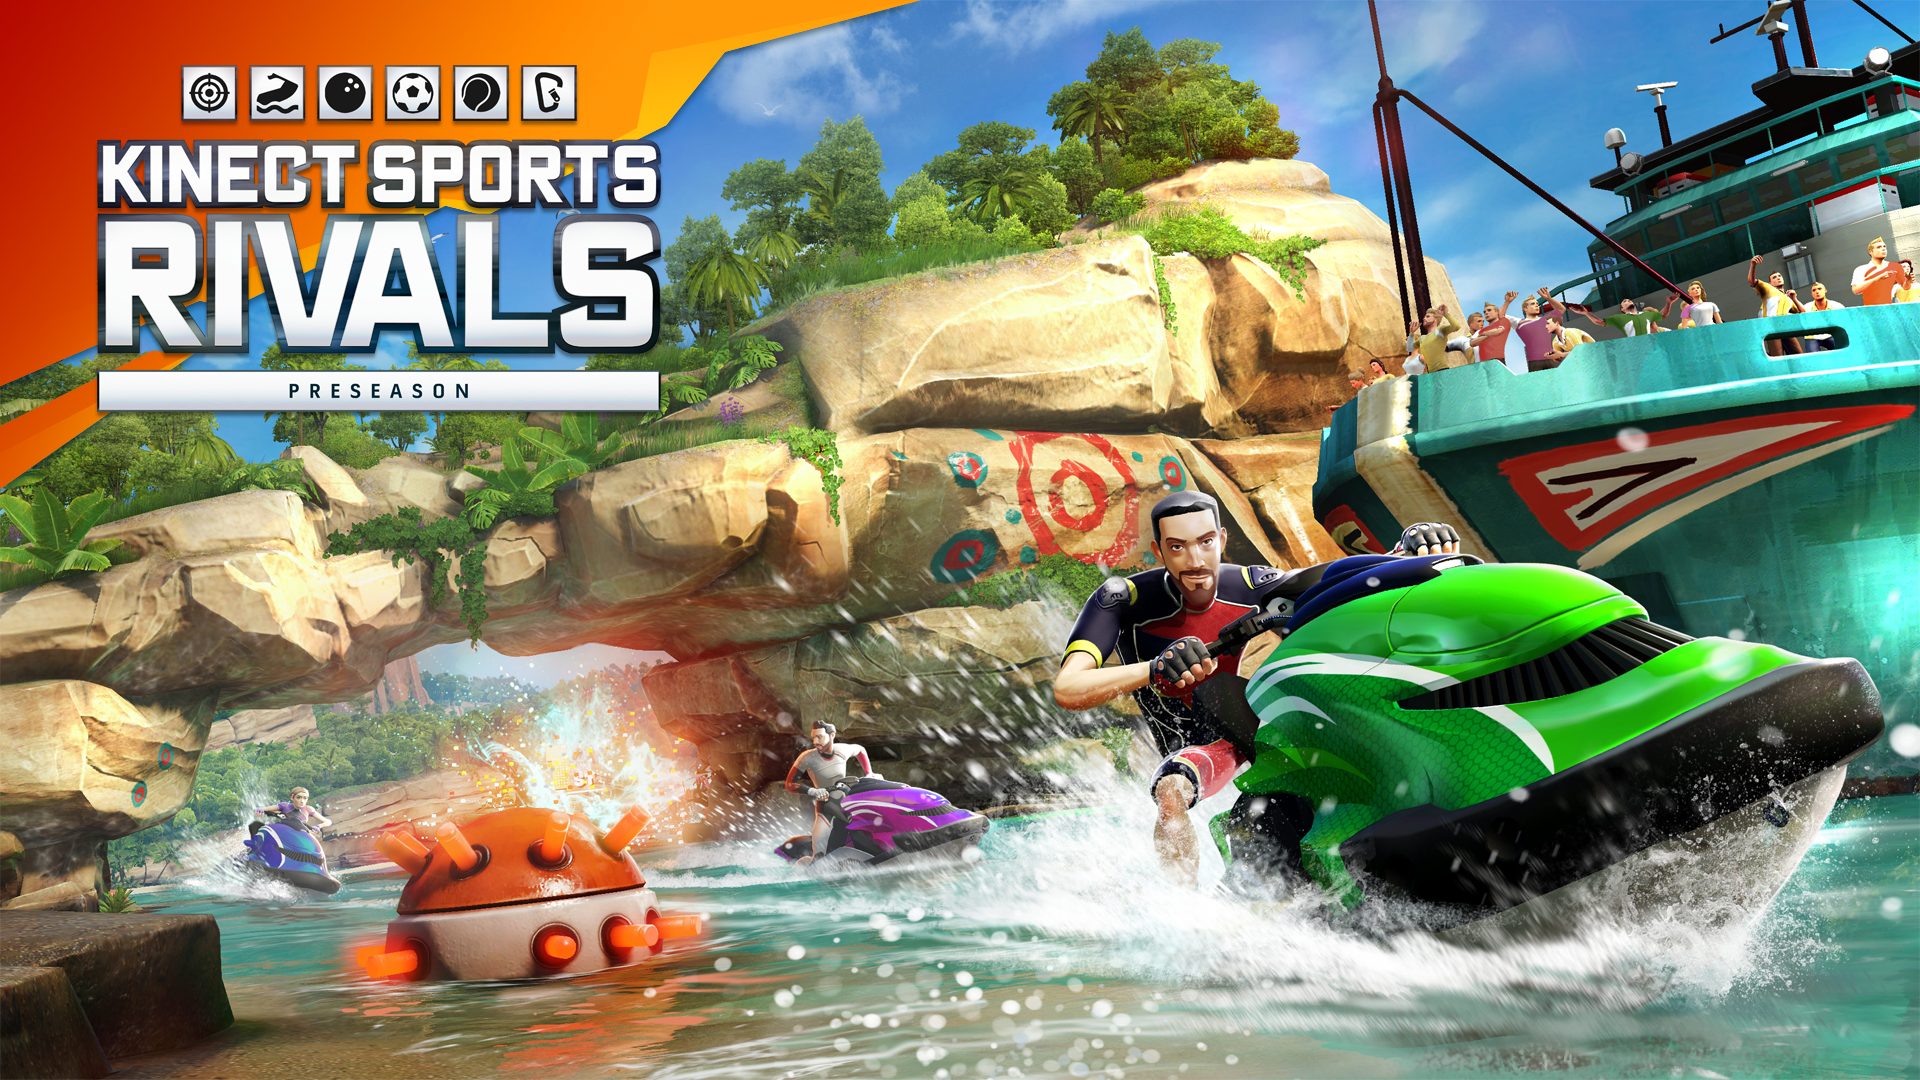 「Kinect Sports Rivals water」の画像検索結果